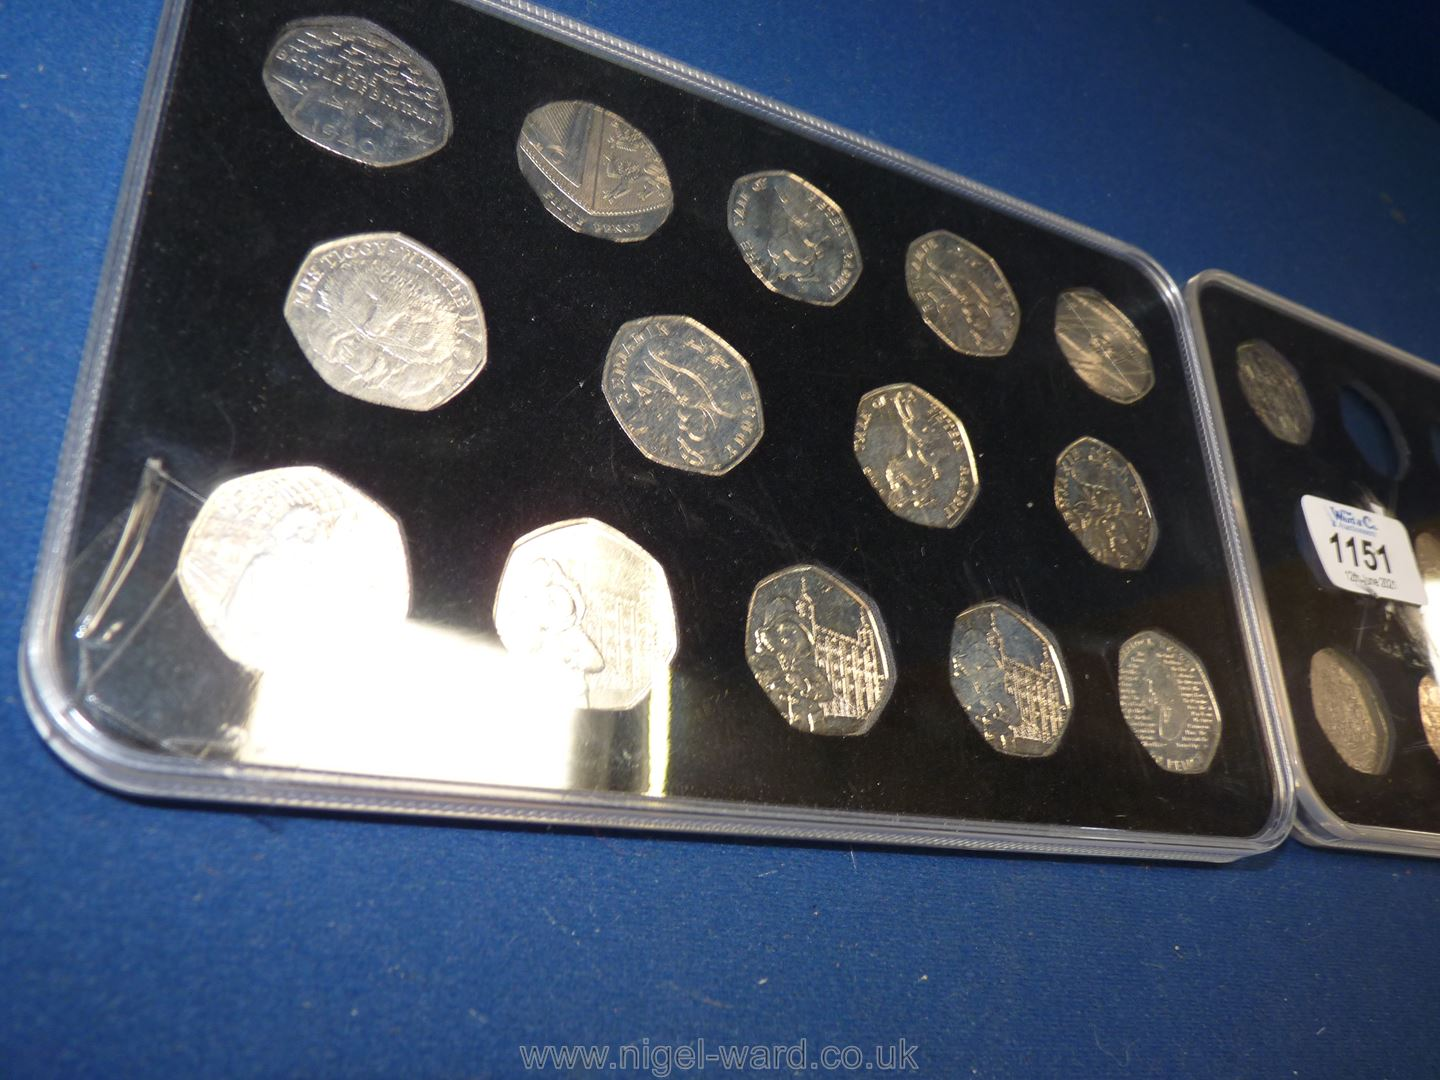 One full and one part case of 50 pence pieces including Olympics Peter Rabbit, Paddington Bear, - Image 2 of 3